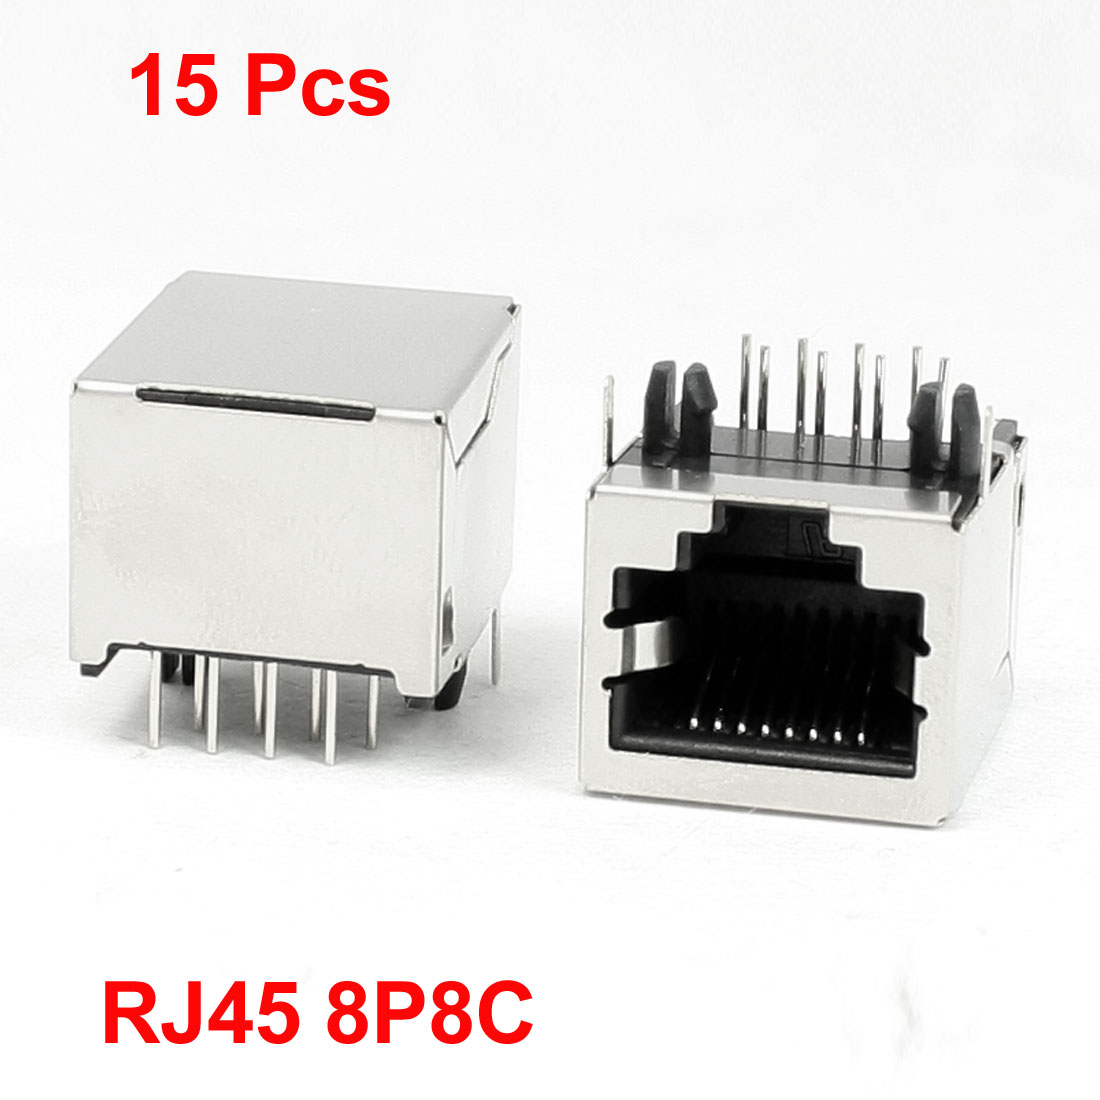 15Pcs 8 Pin RJ45 Jack Sockets 18 x 15.5 x 12mm for Ethernet Network